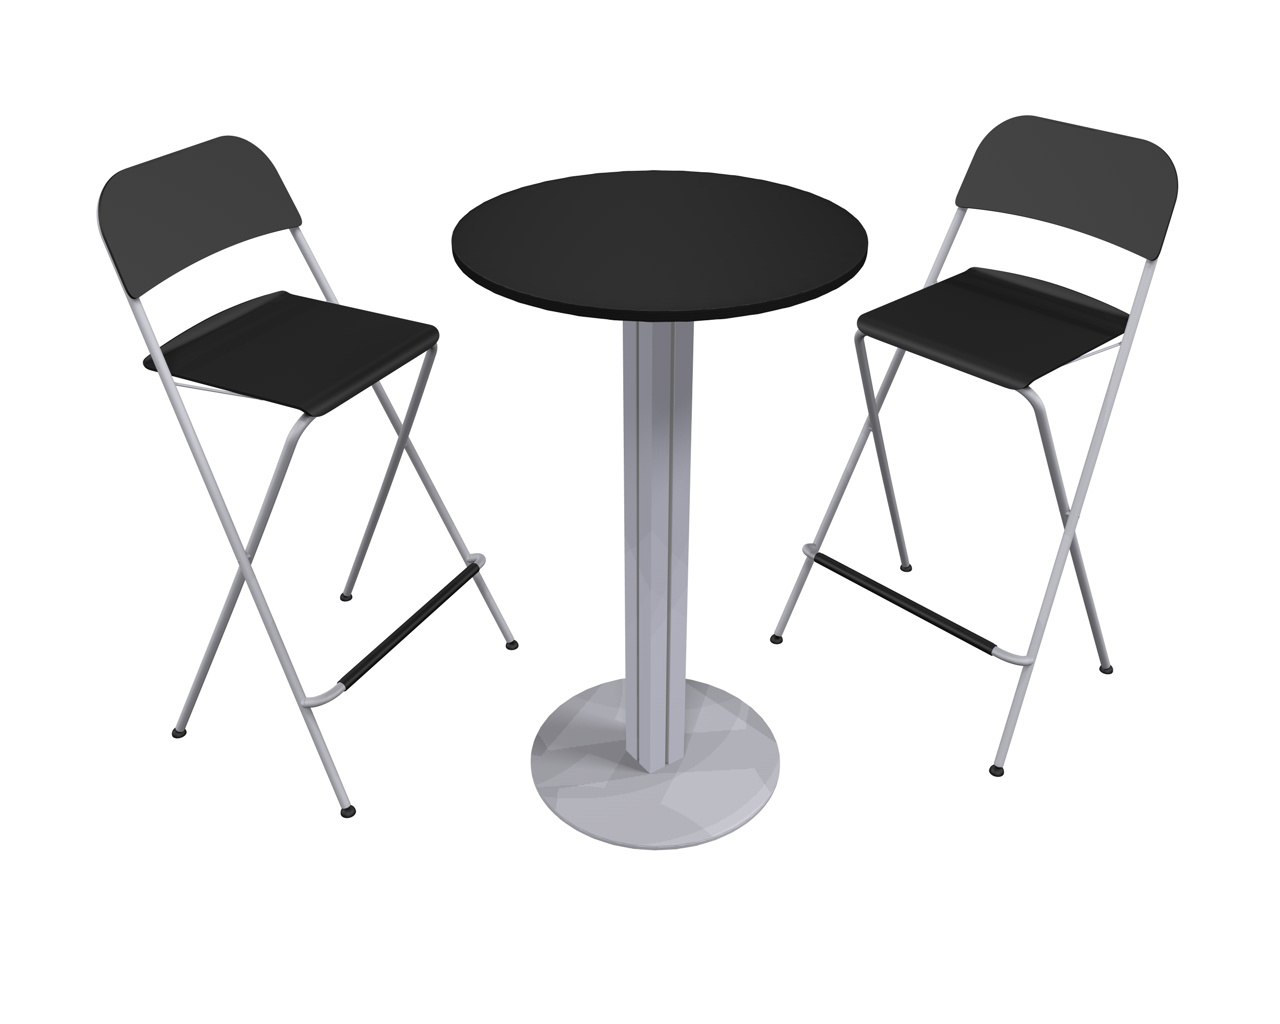 Modern Table And Chairs Xvline Cafe Table And Chairs Trade Show Accessory